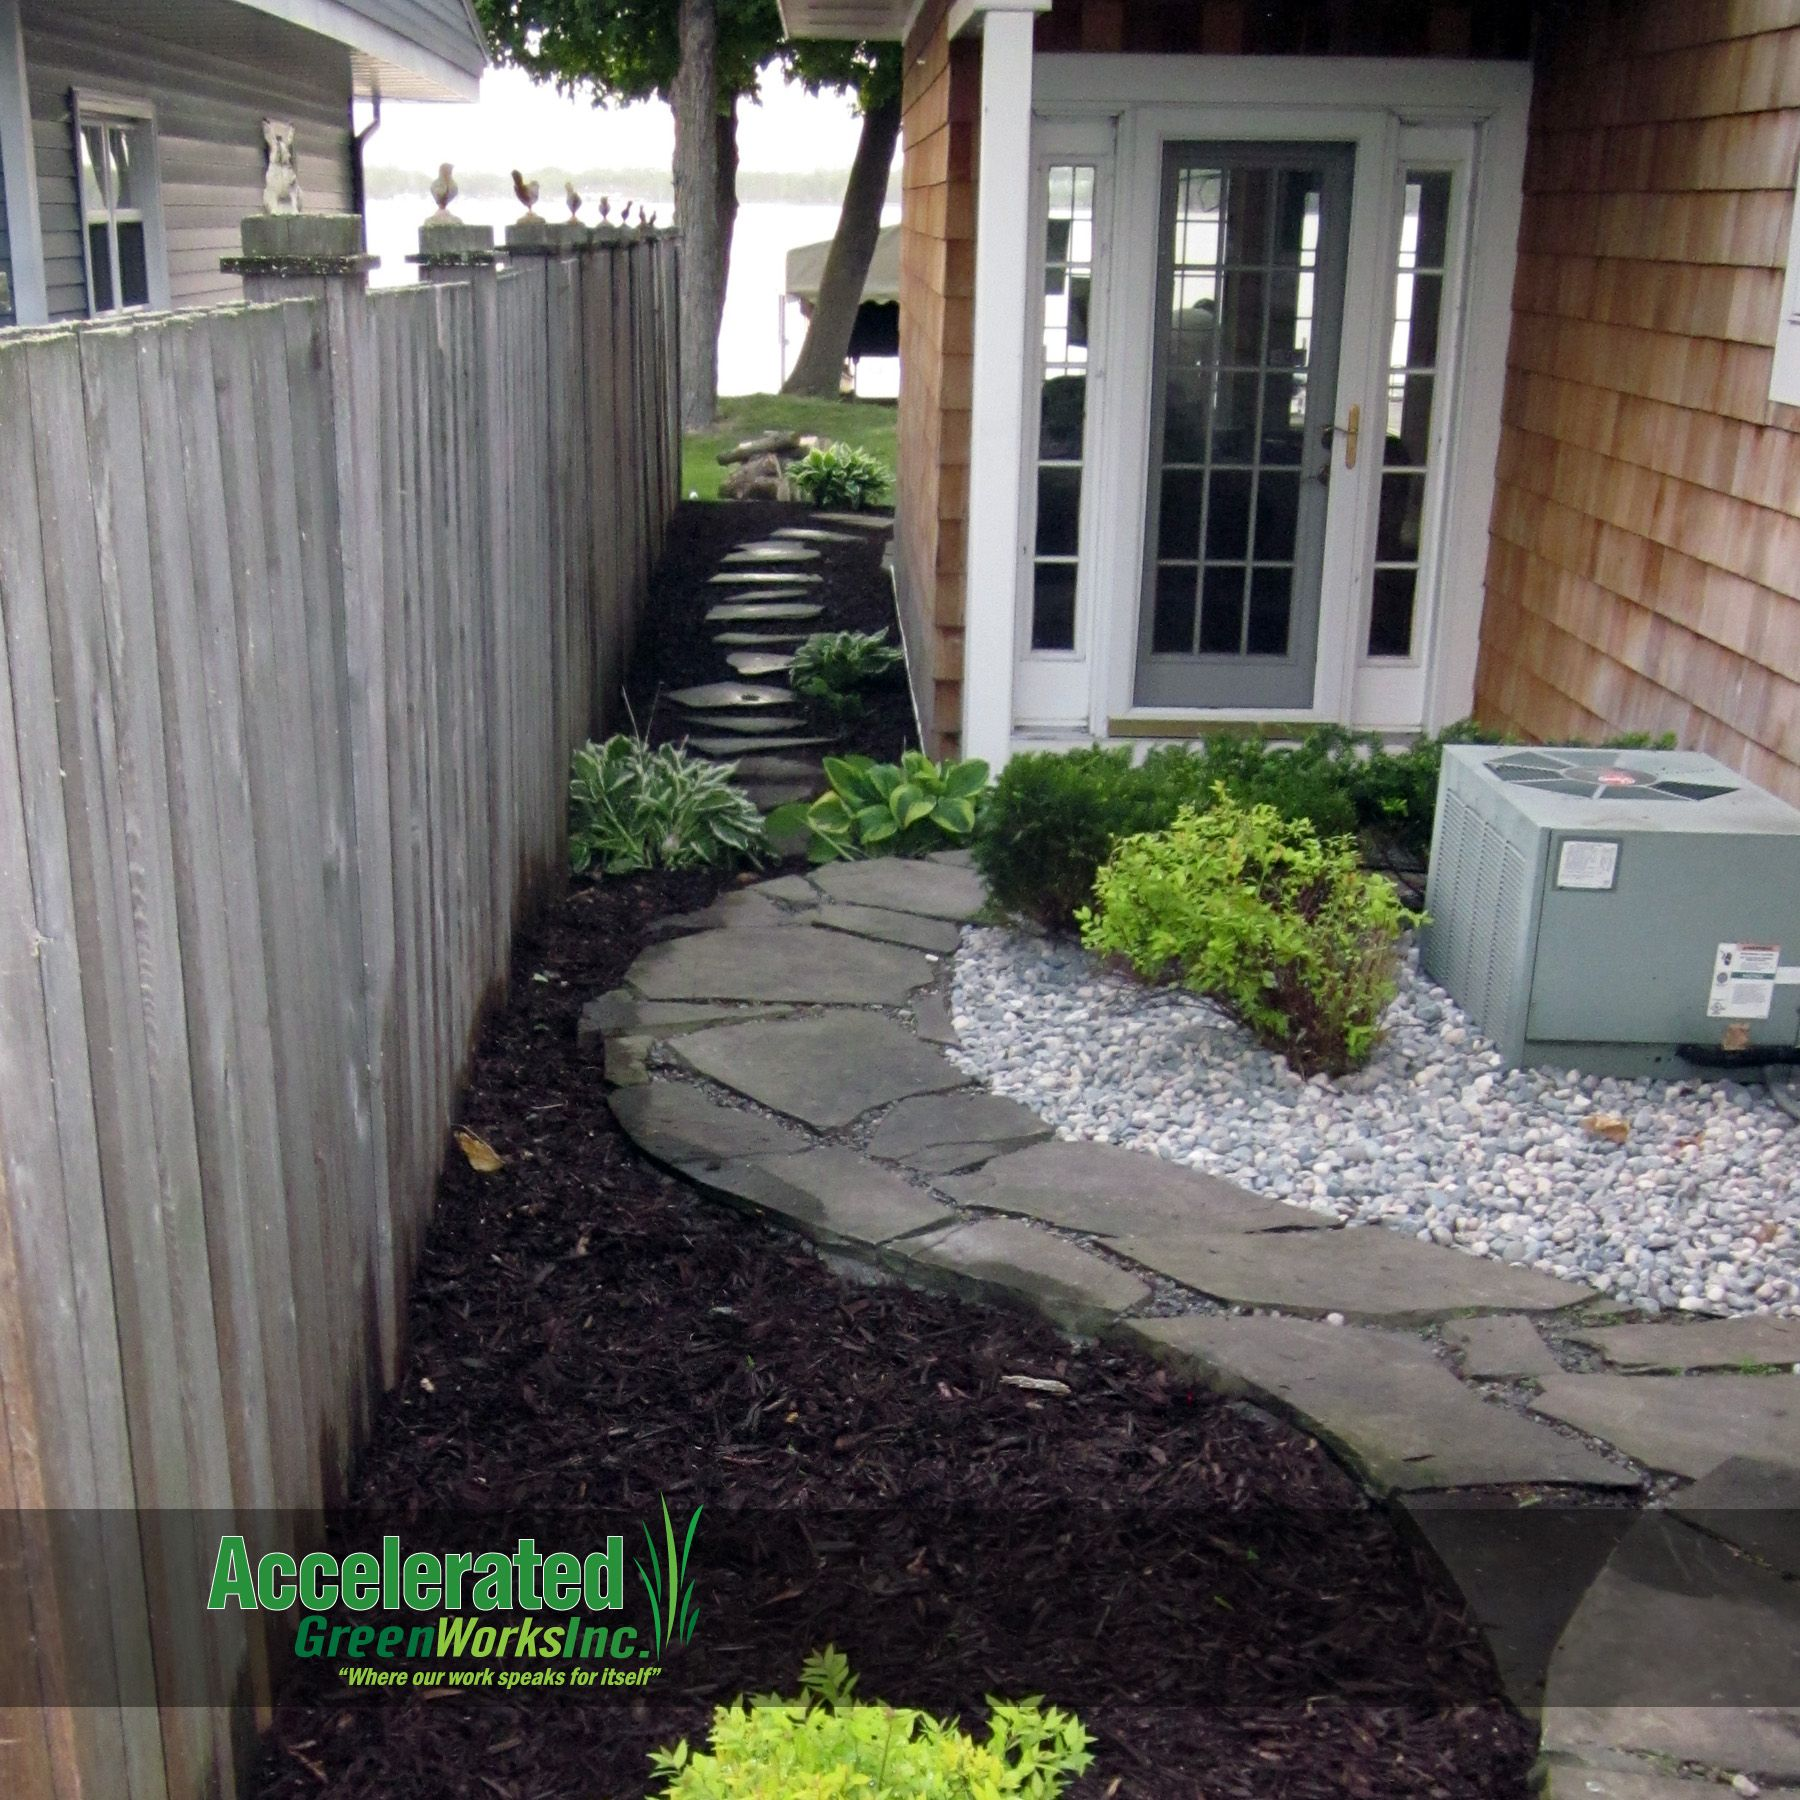 Pin By Accelerated Green Works Inc On Landscaping Design Ideas Garden Shrubs Outdoor Landscaping Curb Appeal Garden